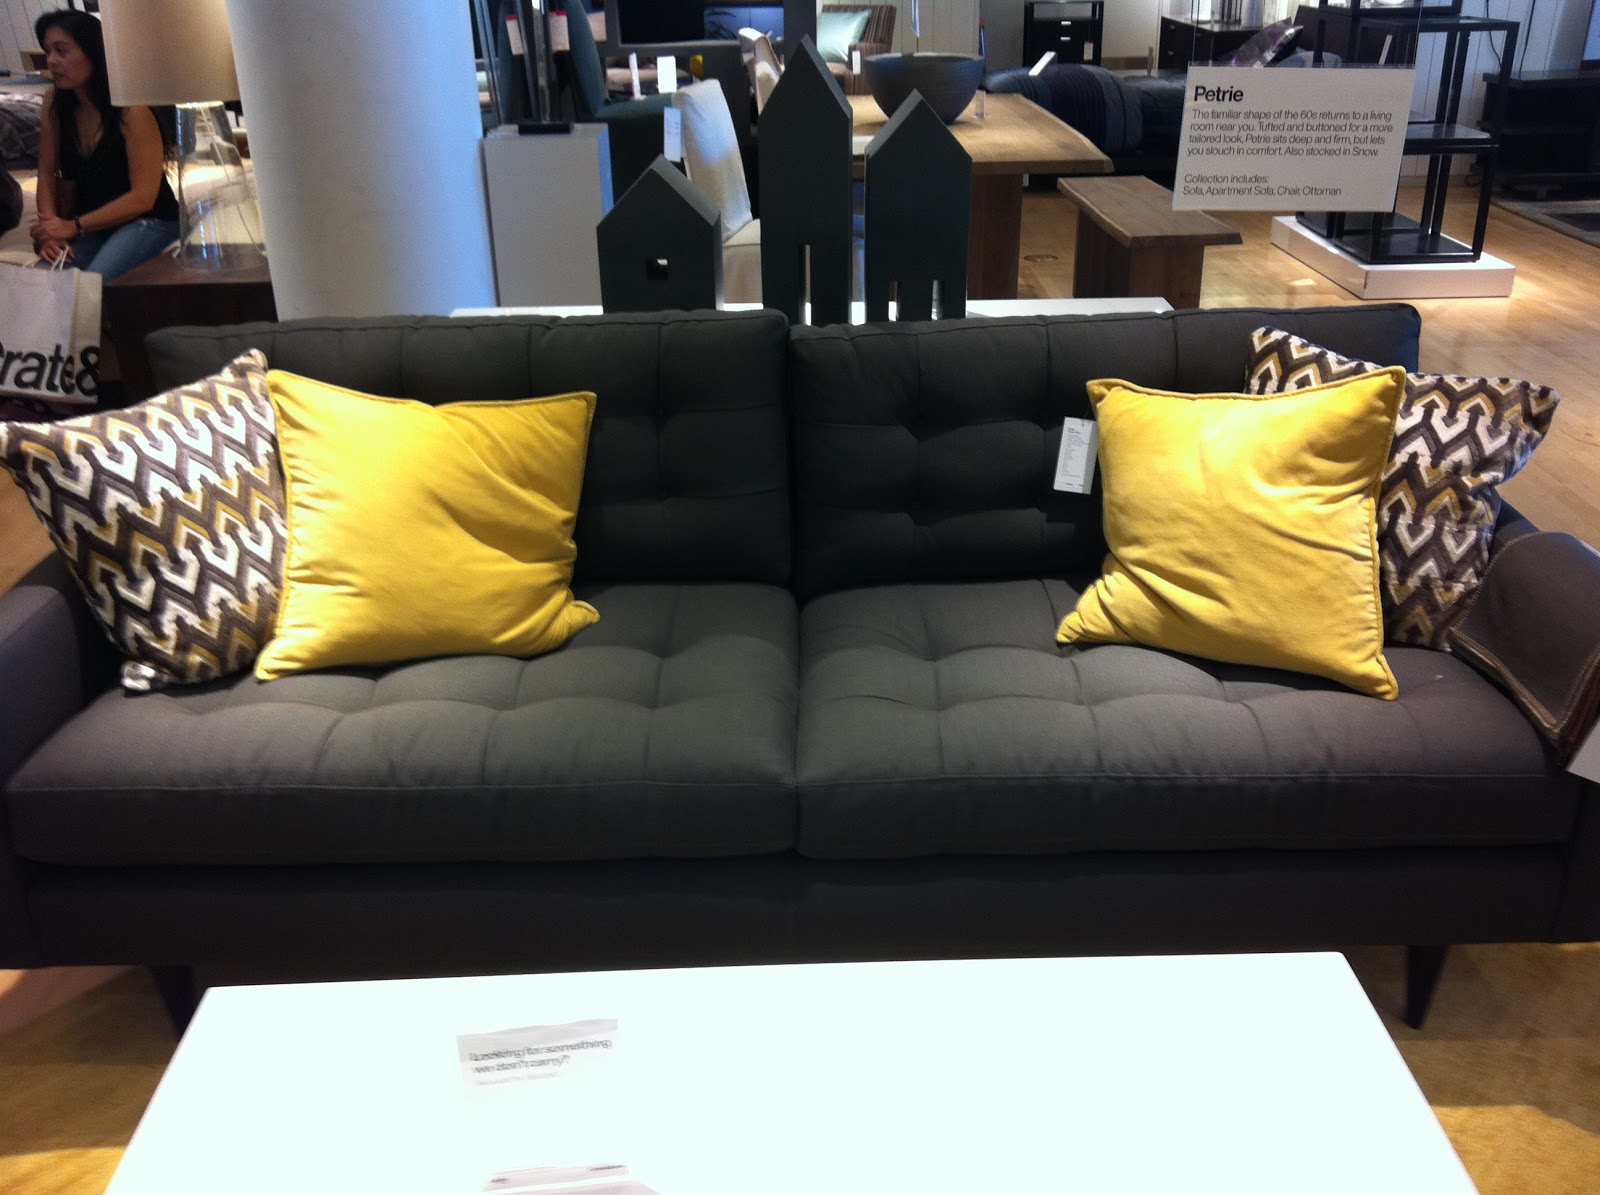 Attractive The Petrie Sofa In Graphite. Itu0027s Tufted And Comfy With Classic Lines But  Boasts A Price Tag Of $1699.